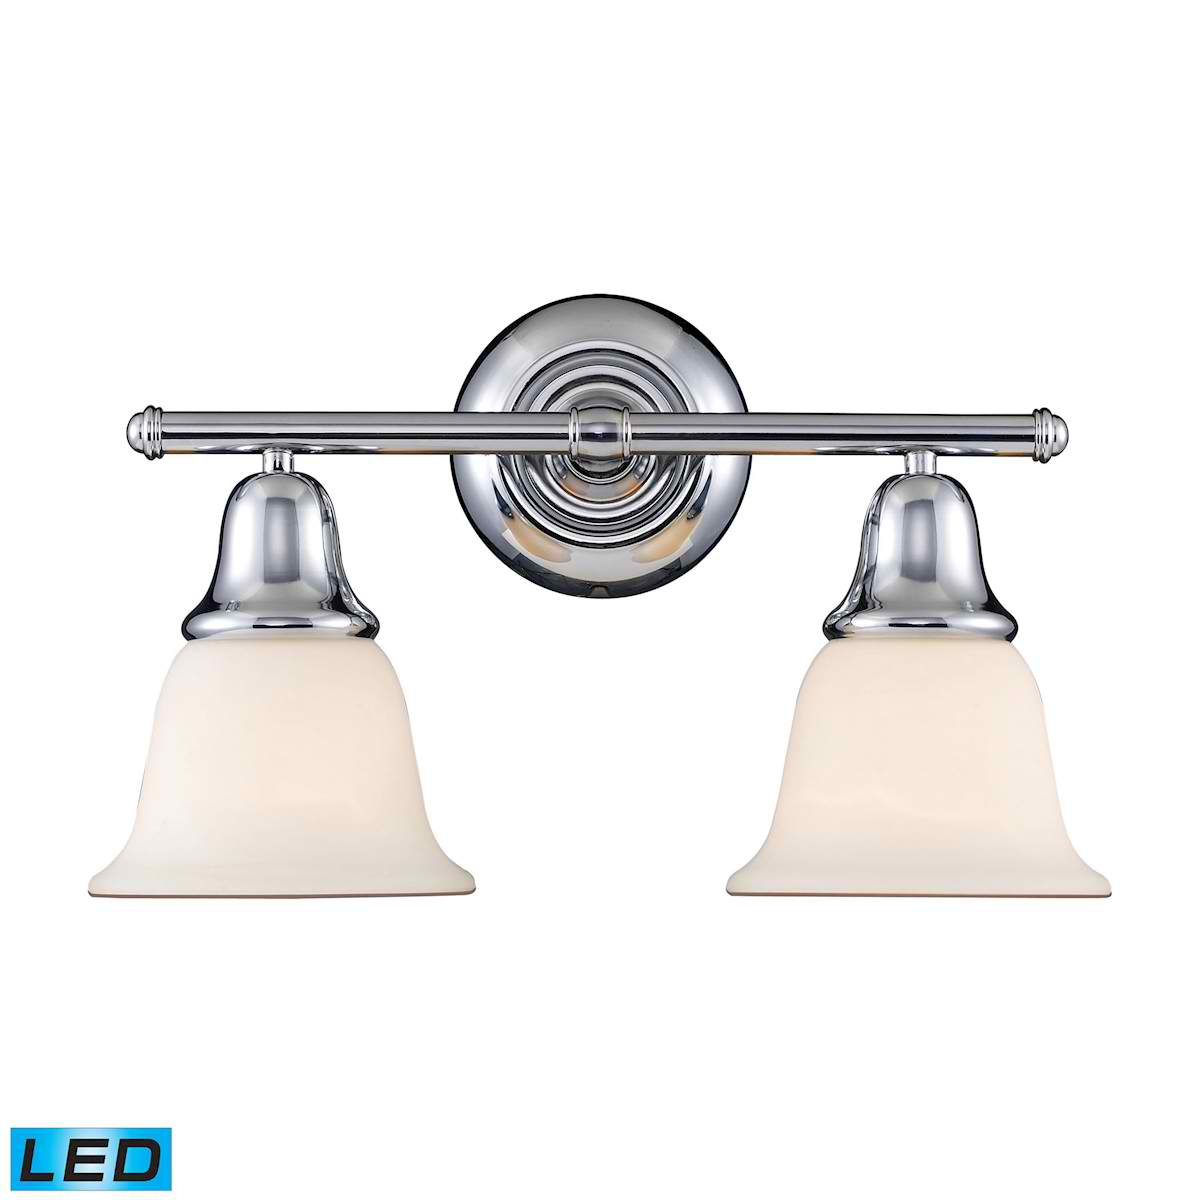 Berwick 2-Light Vanity in Polished Chrome - LED, 800 Lumens (1600 Lumens Total) with Full Scale Dimm